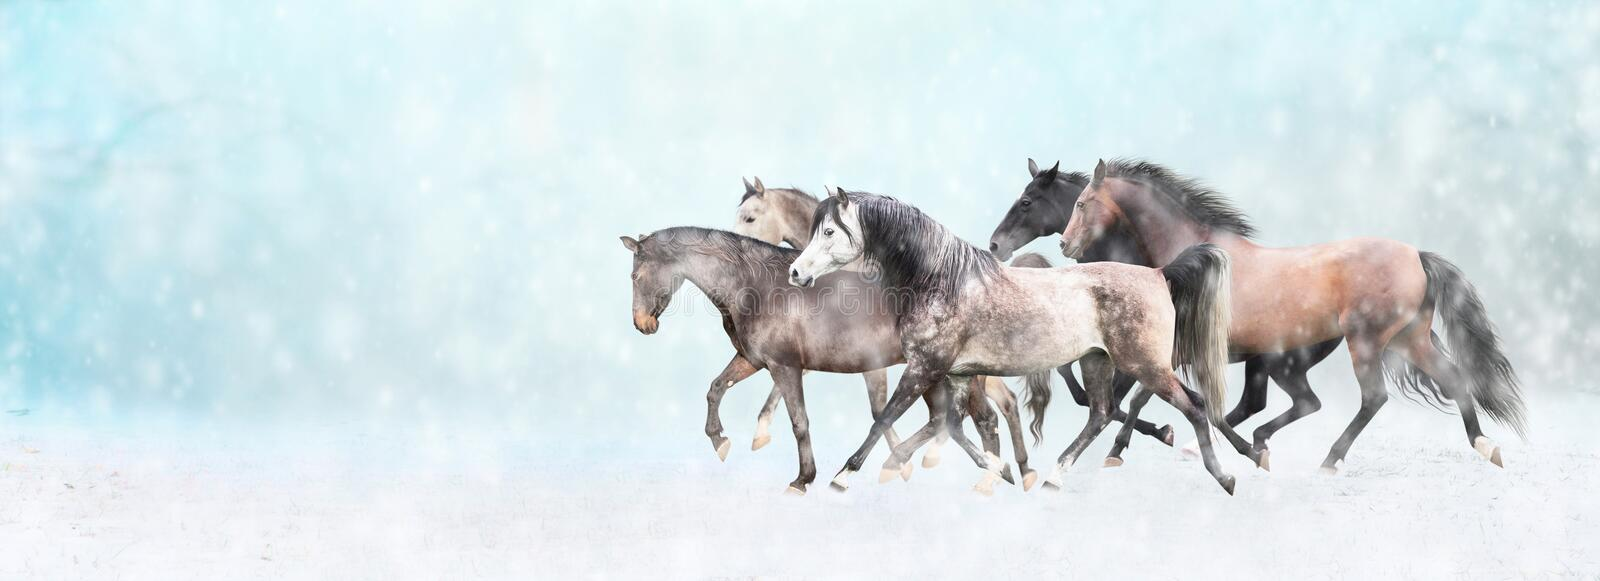 Running horses herd, in snow, winter banner royalty free stock images